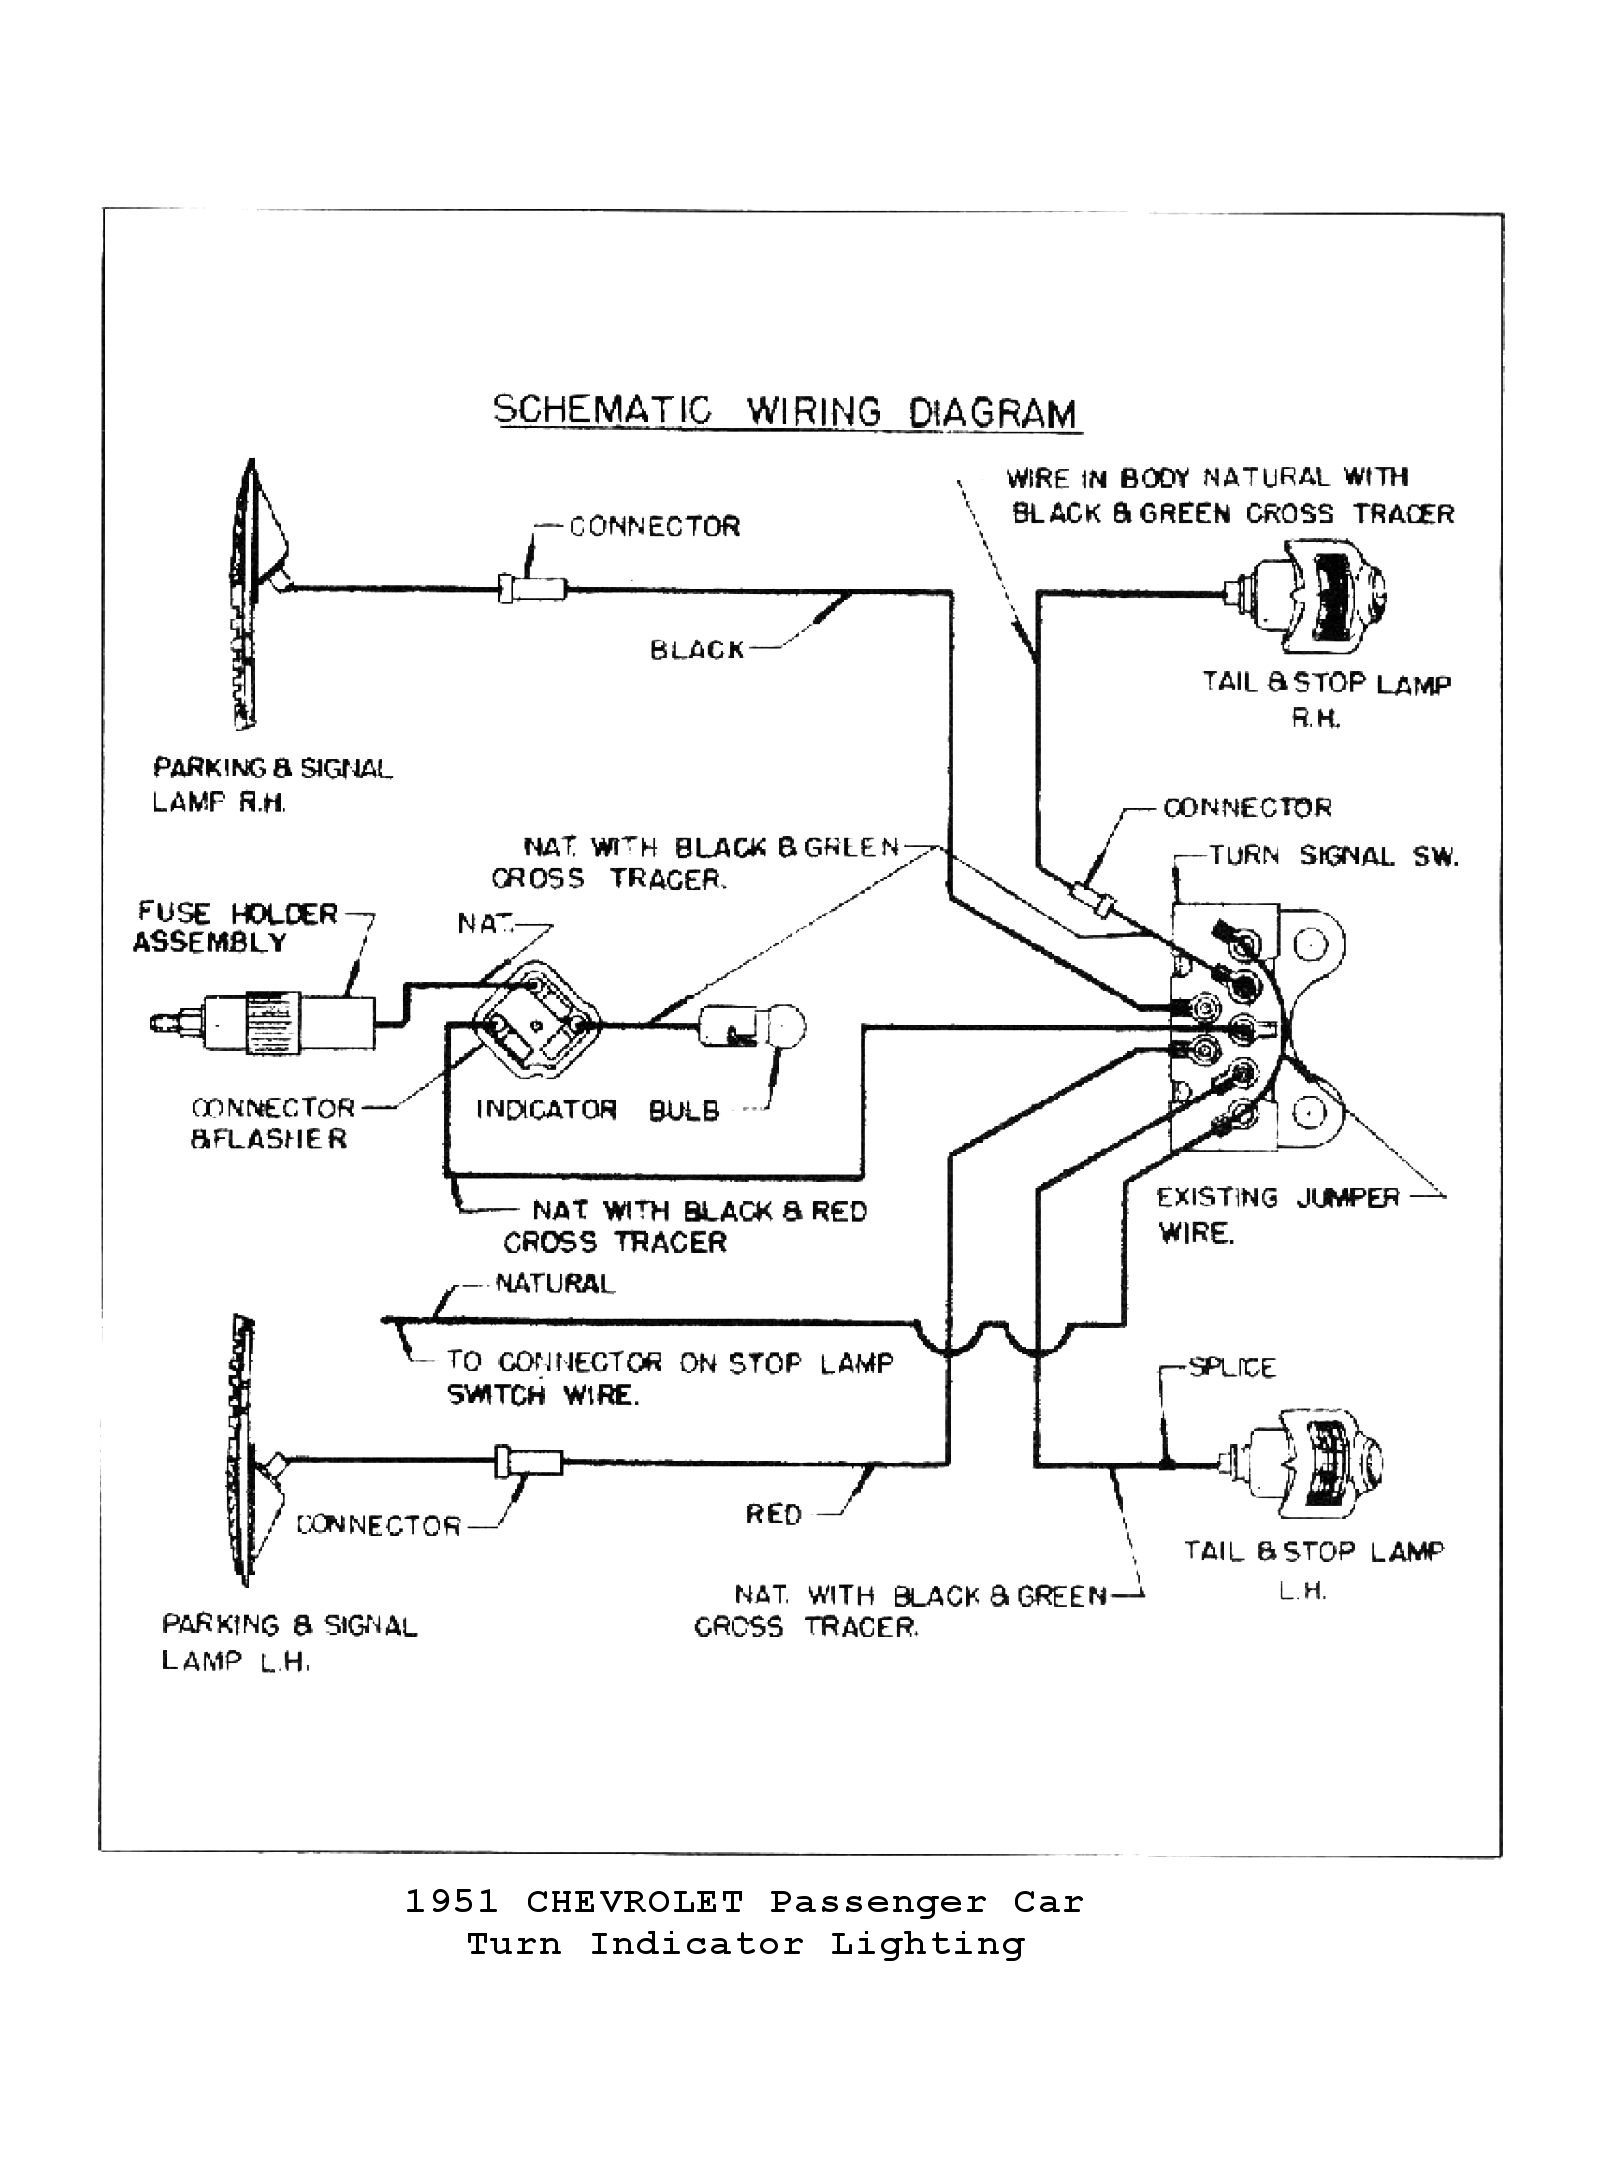 1966 corvette turn signal wiring diagram ceiling fan circuit capacitor chevy diagrams 1951 truck directional signals